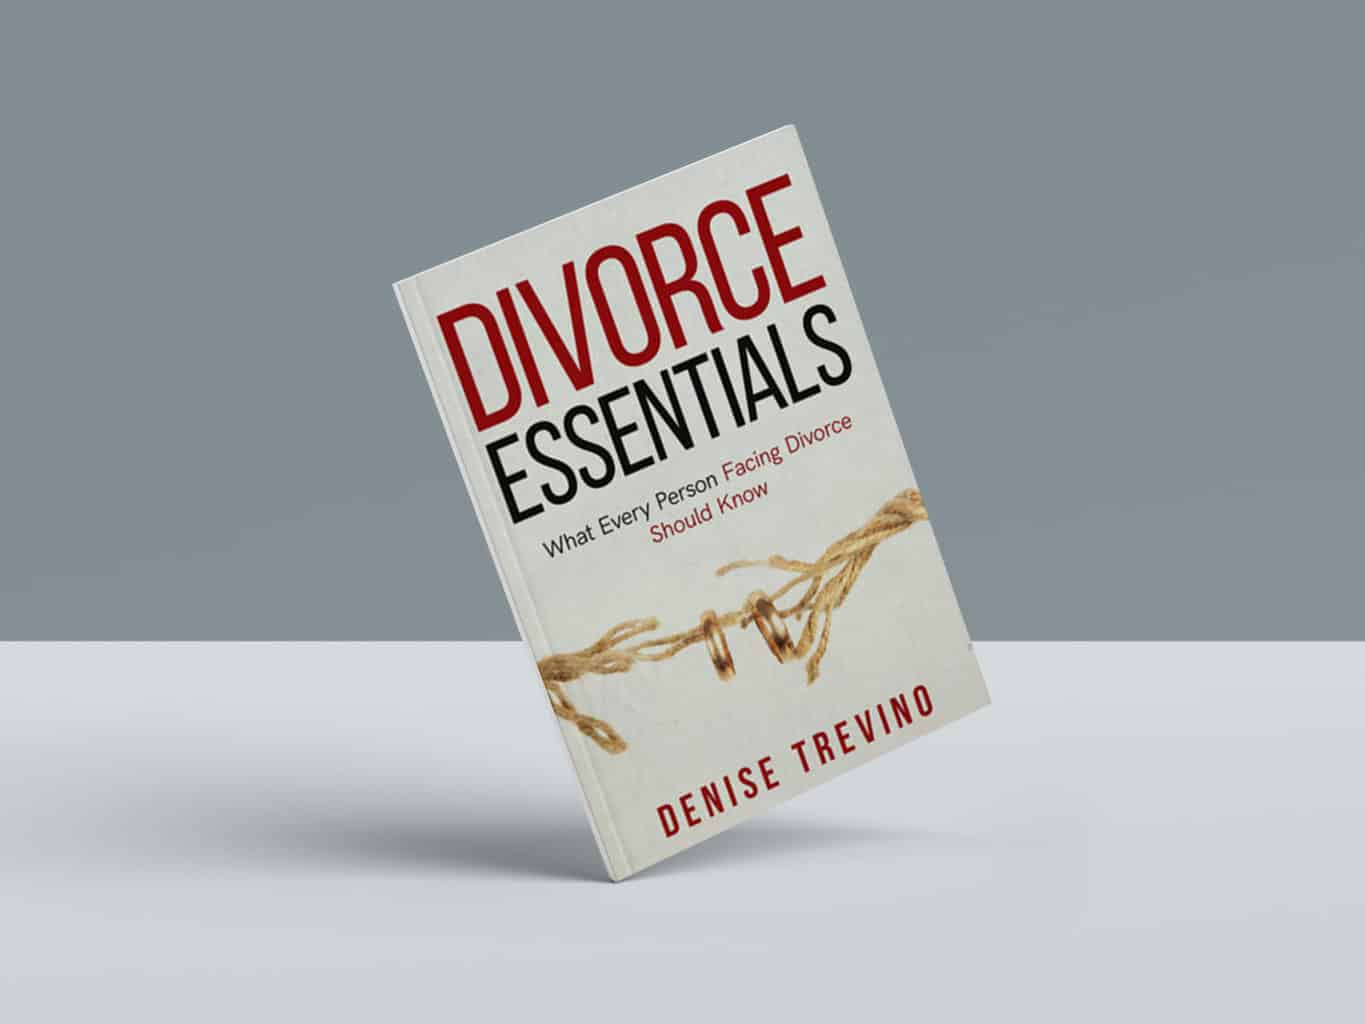 Divorce Essentials: What Every Person Facing Divorce Should Know